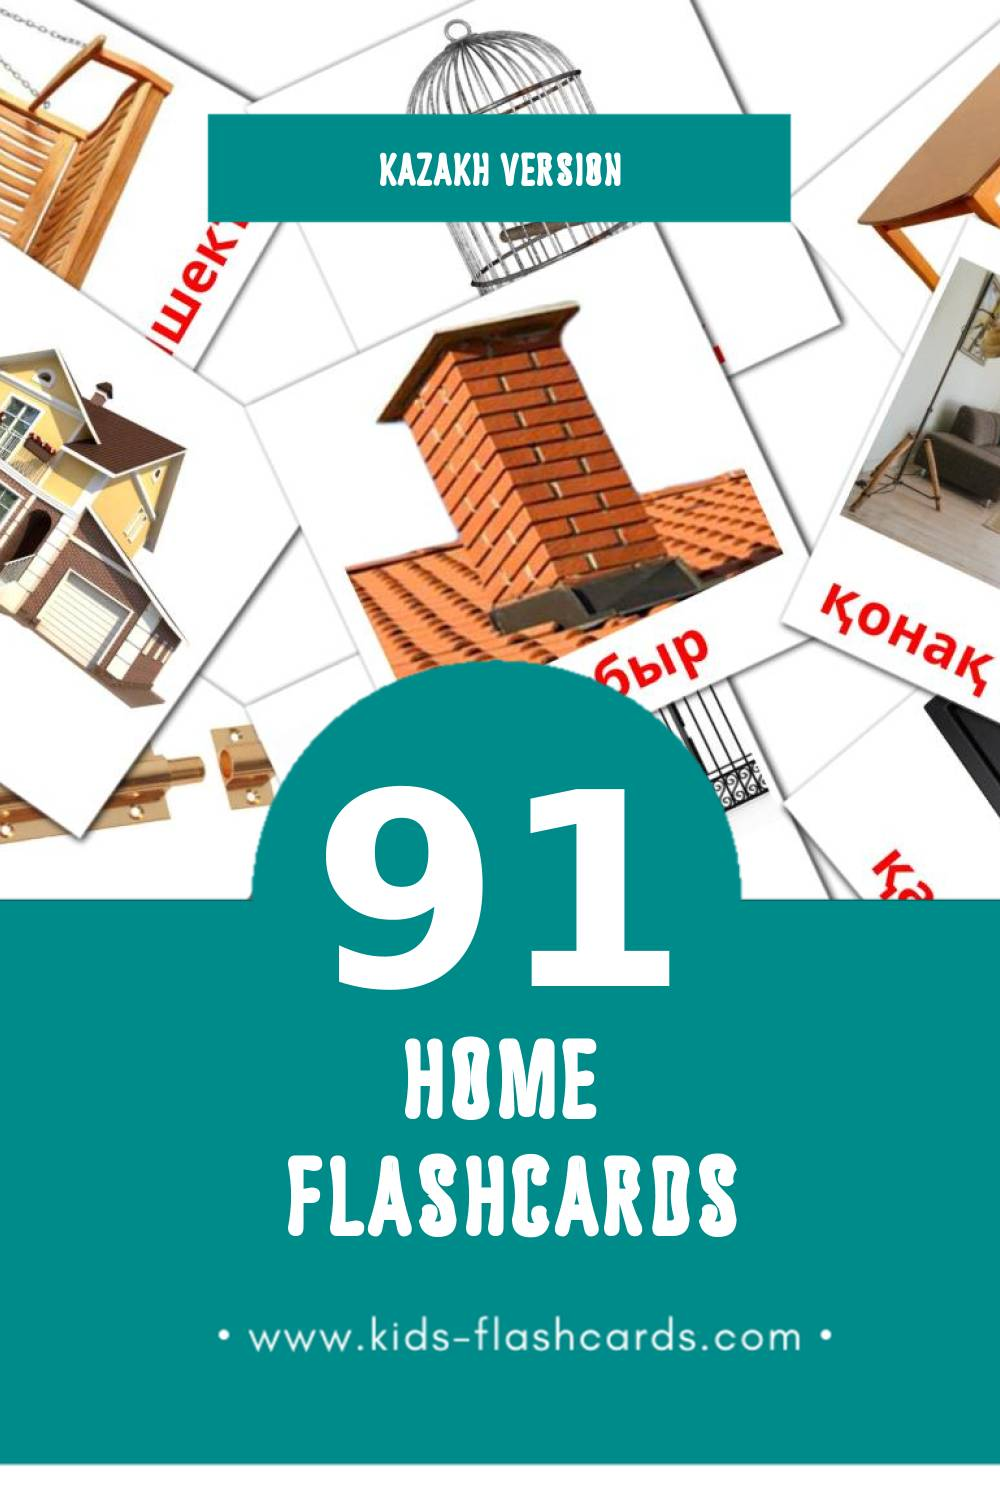 Visual Үй Flashcards for Toddlers (74 cards in Kazakh)